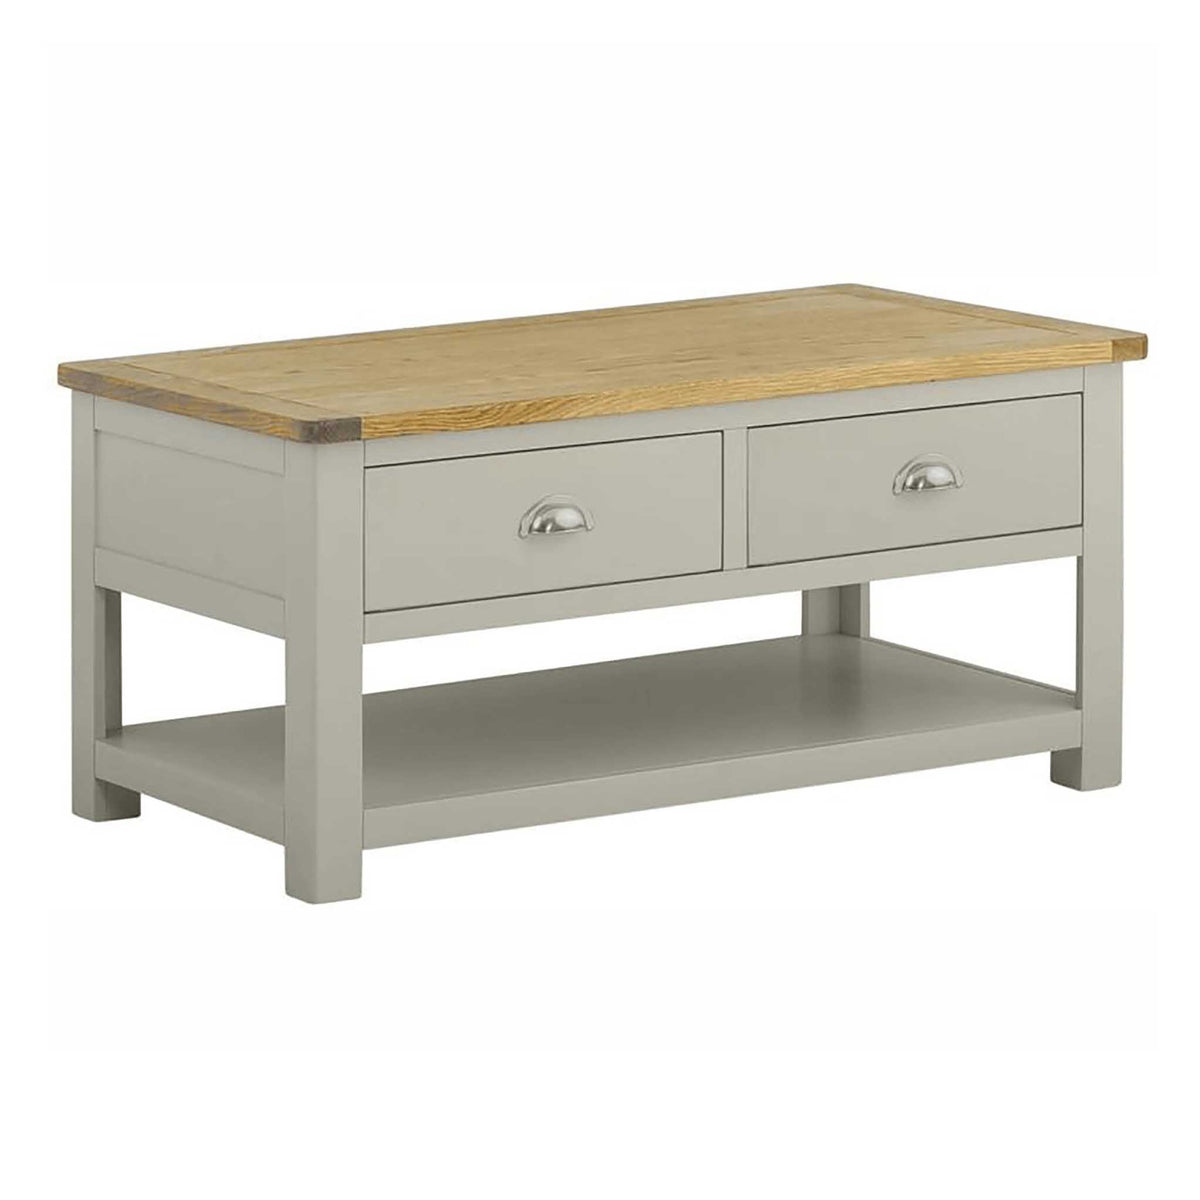 The Padstow Grey Low Wooden Coffee Table with 2 Drawers from Roseland Furniture